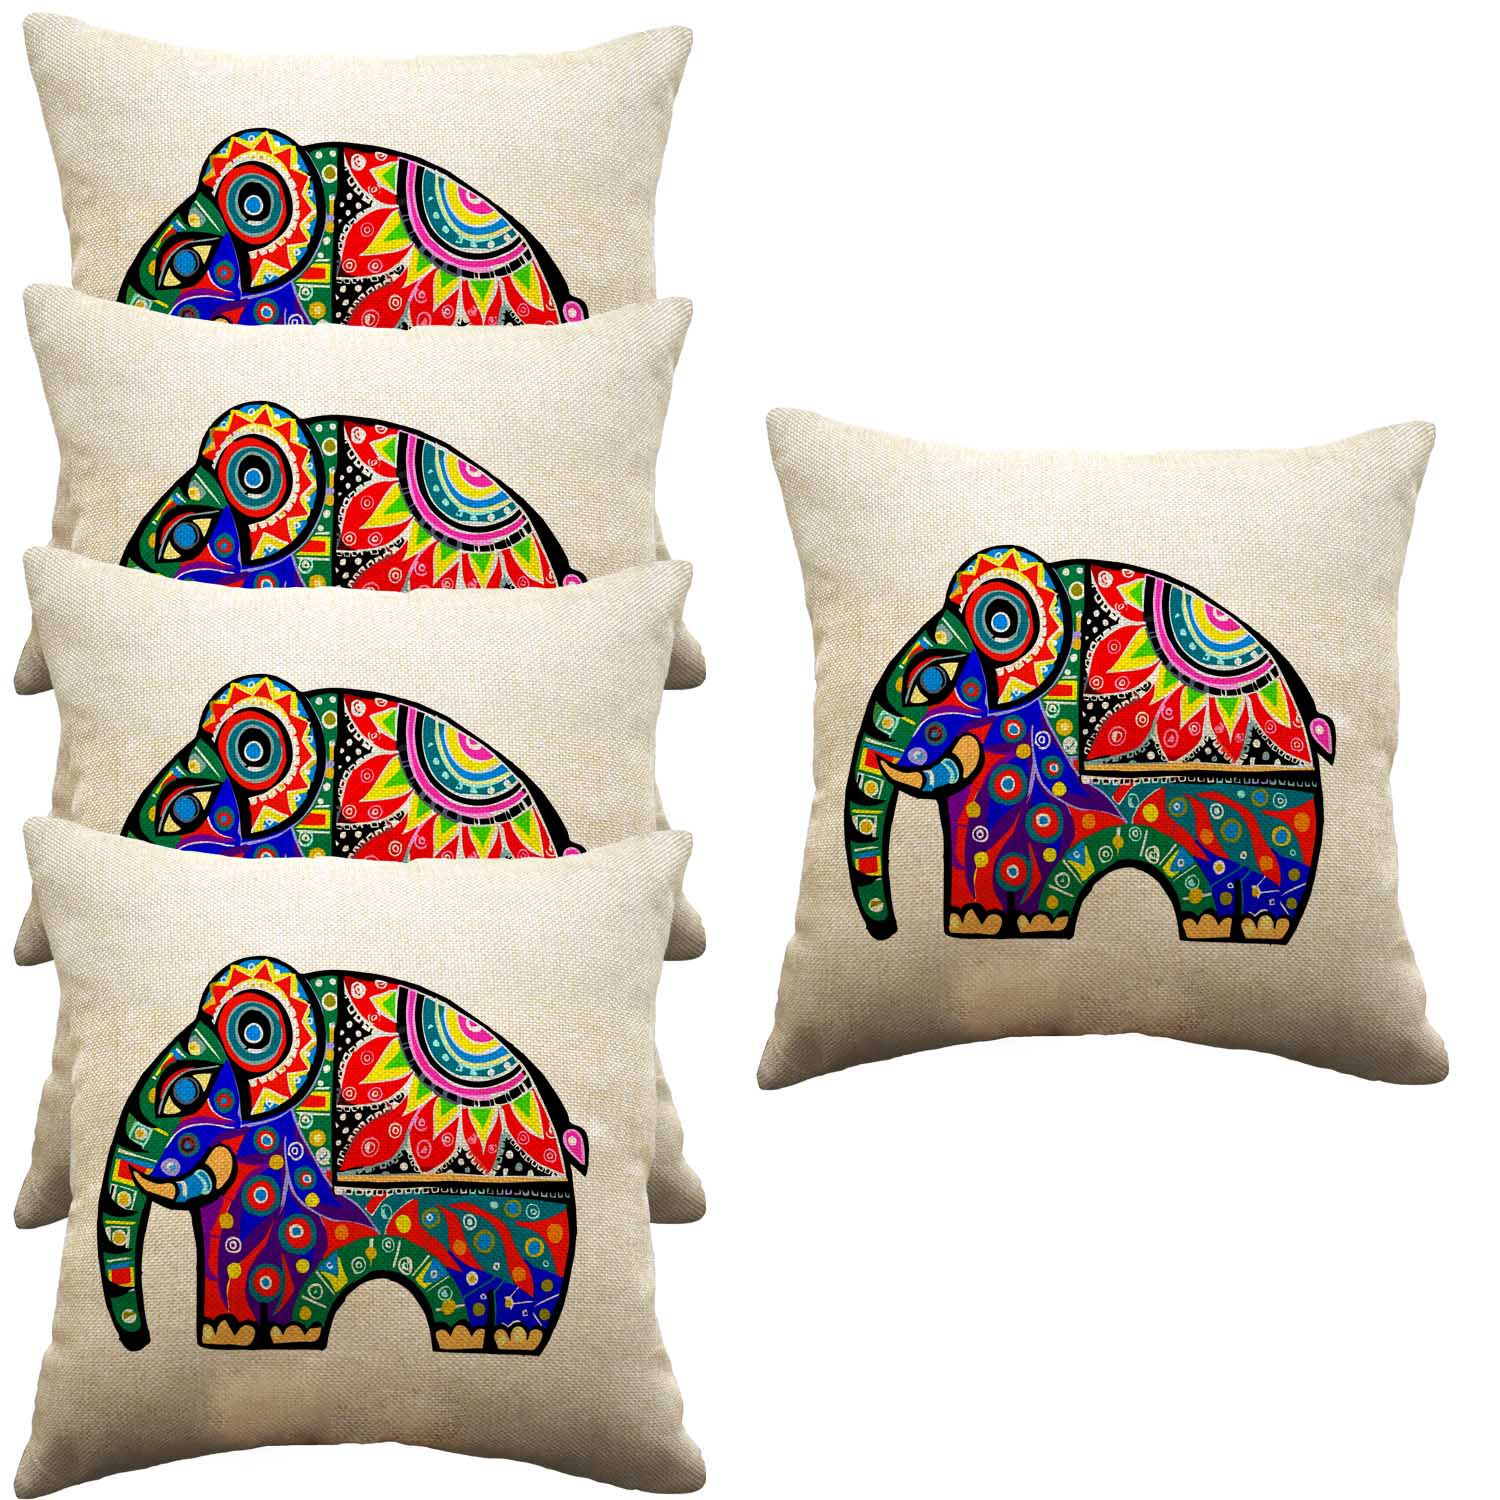 Viceroy Set of 5 Jute Cushion Covers 40X40 cm (16X16)